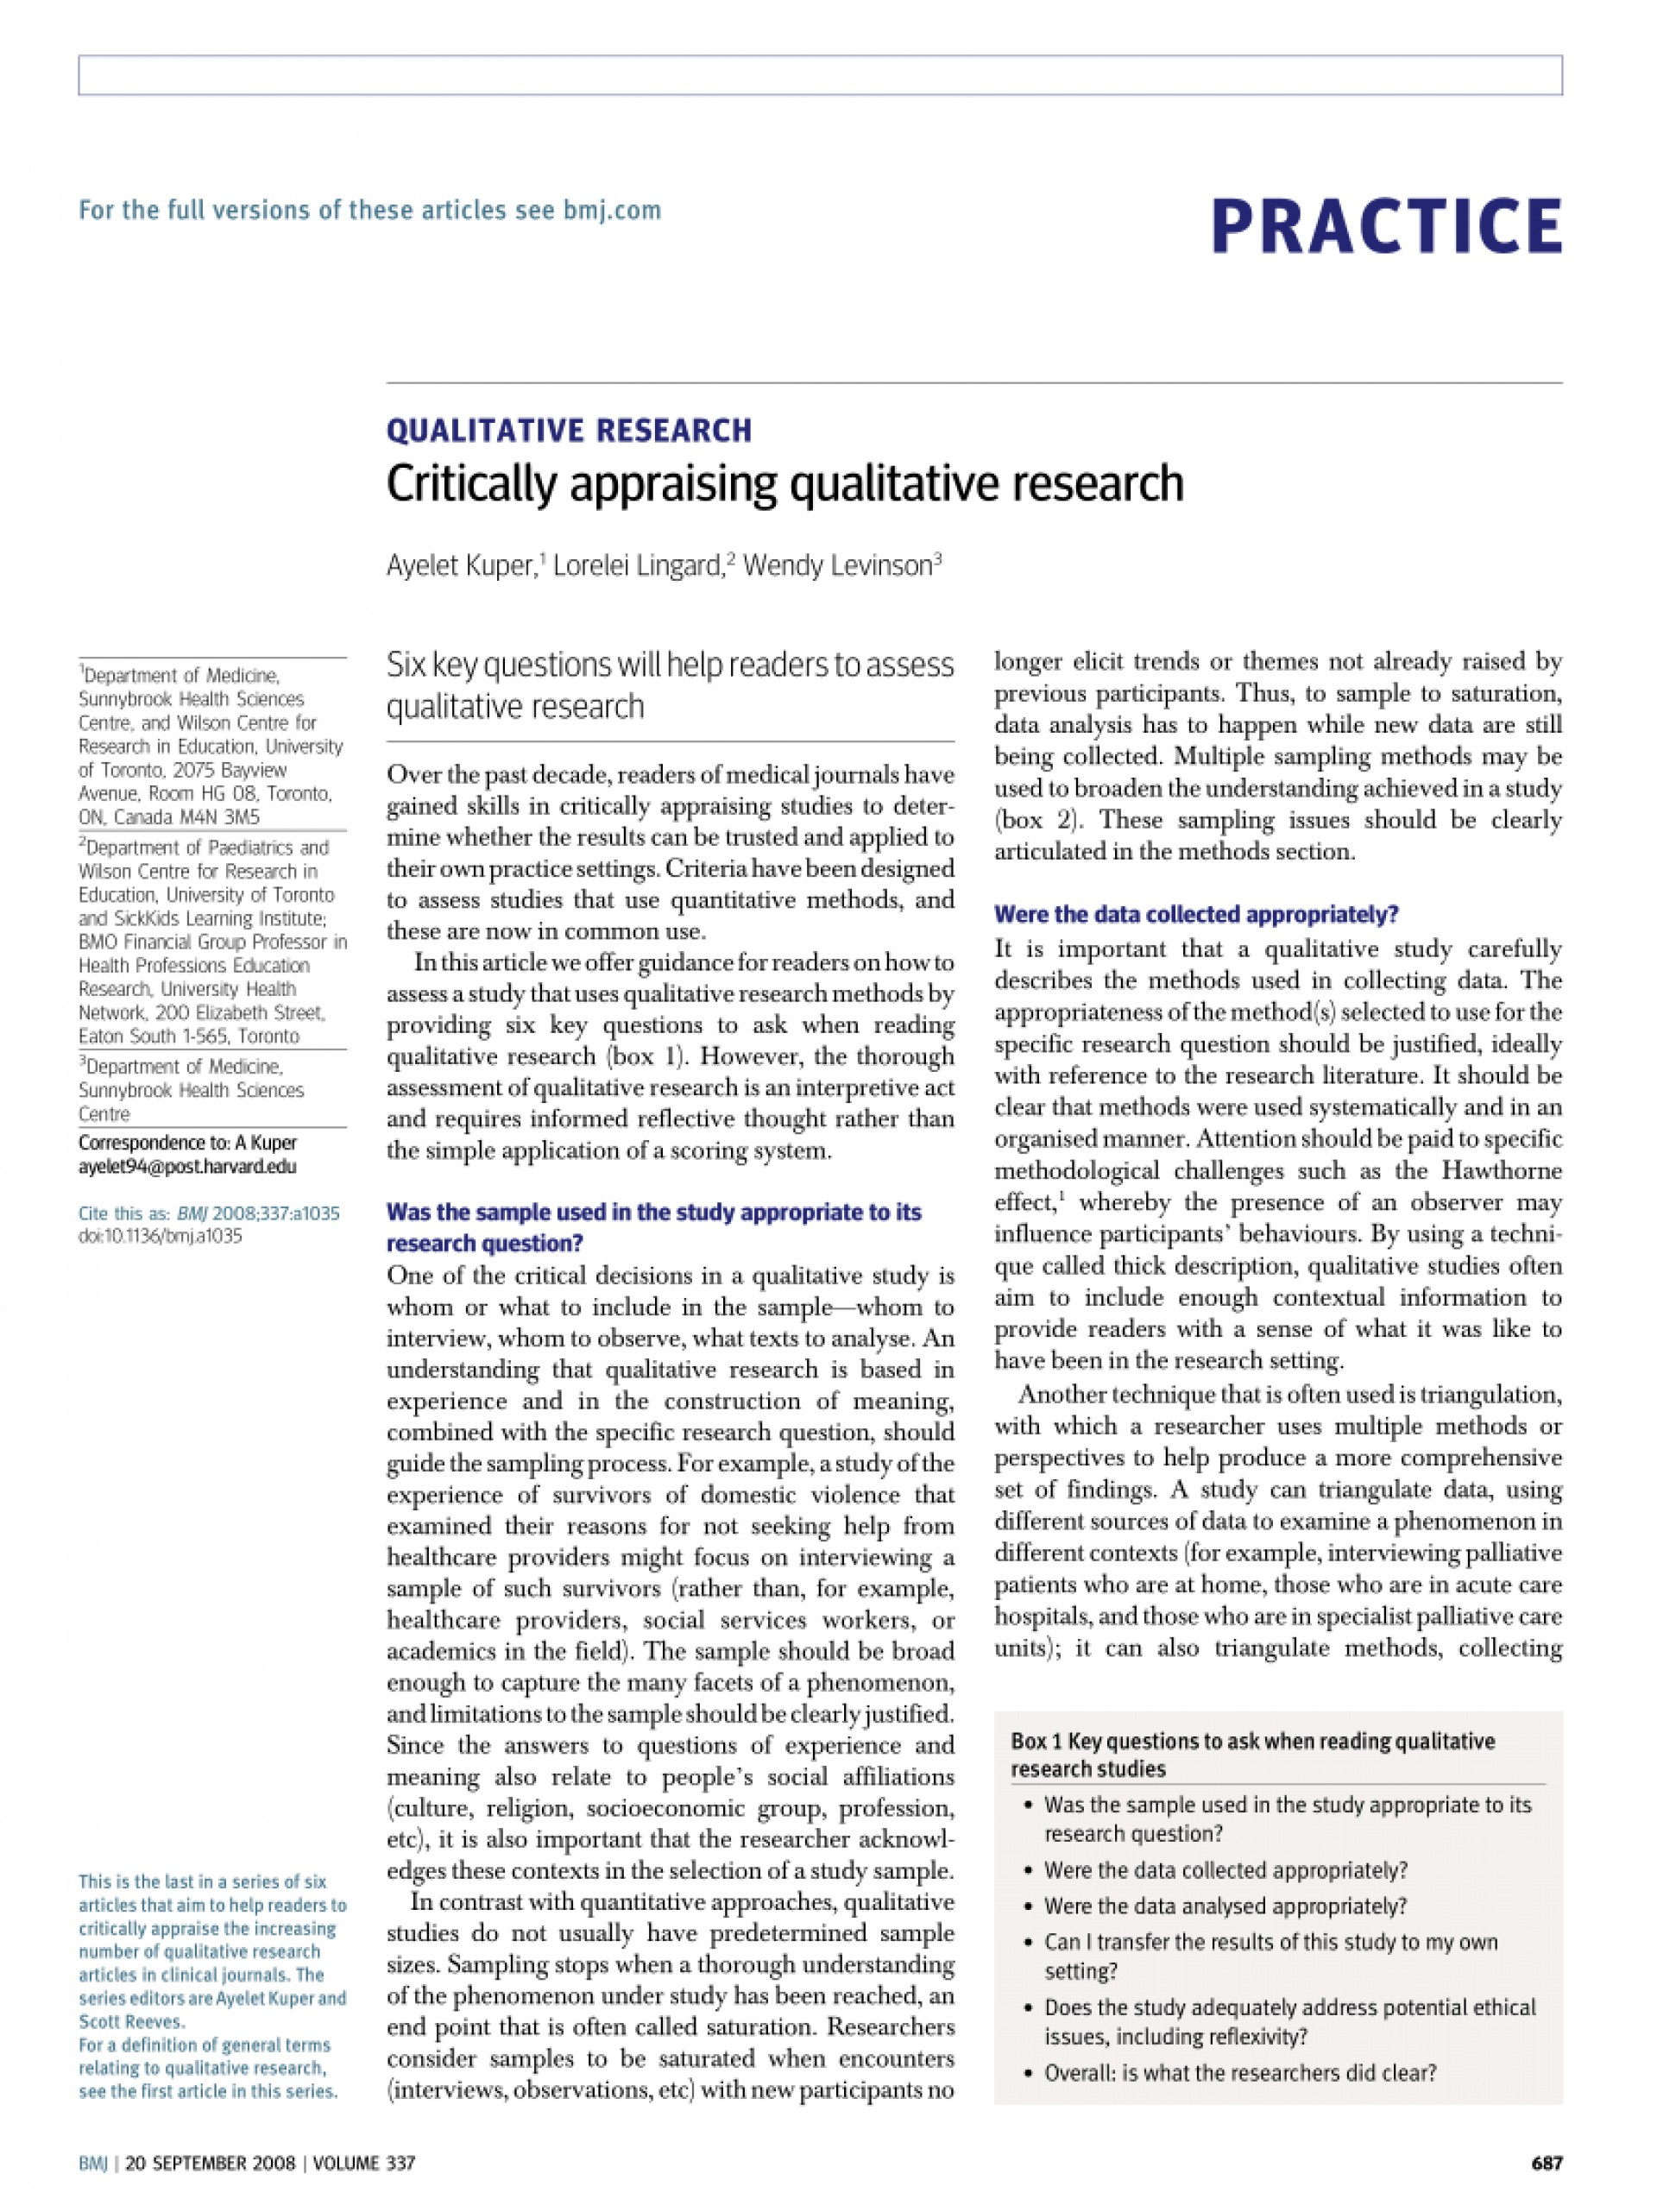 003 Research Paper Largepreview How To Write The Results Section Of Formidable A Qualitative 1920